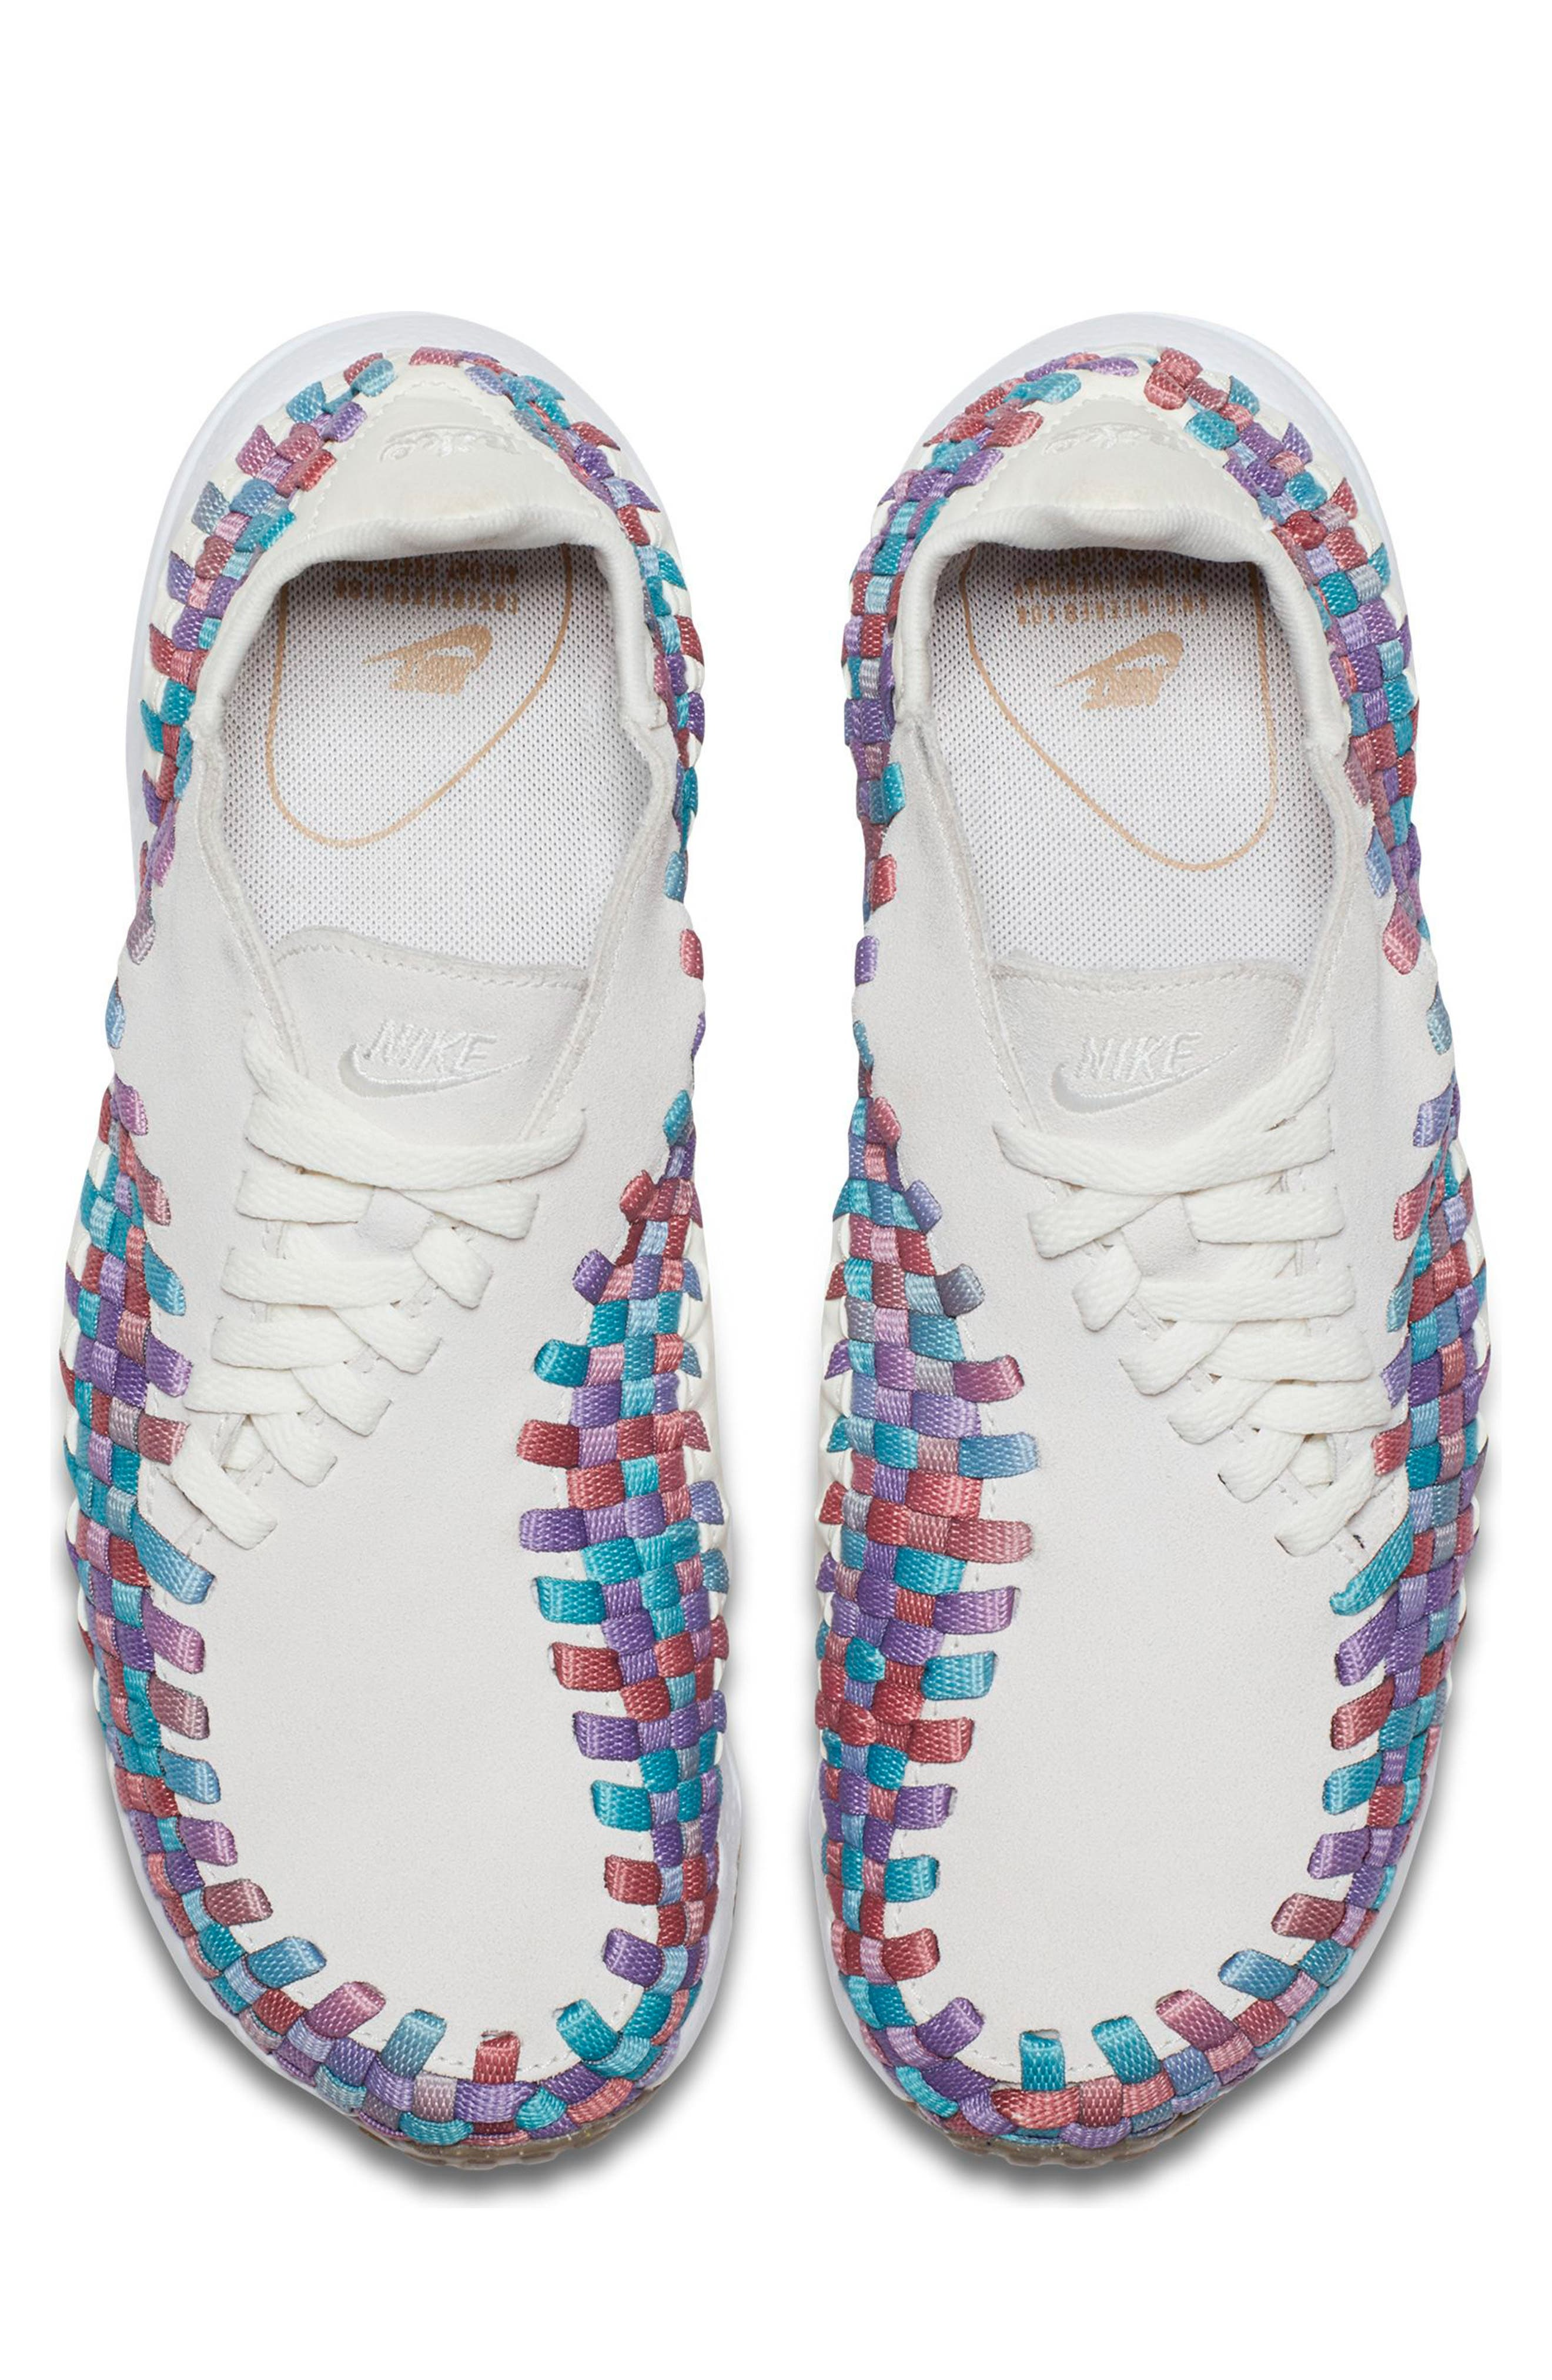 Air Footscape Woven Sneaker,                             Alternate thumbnail 5, color,                             Sail/ White/ Red/ Teal/ Gum